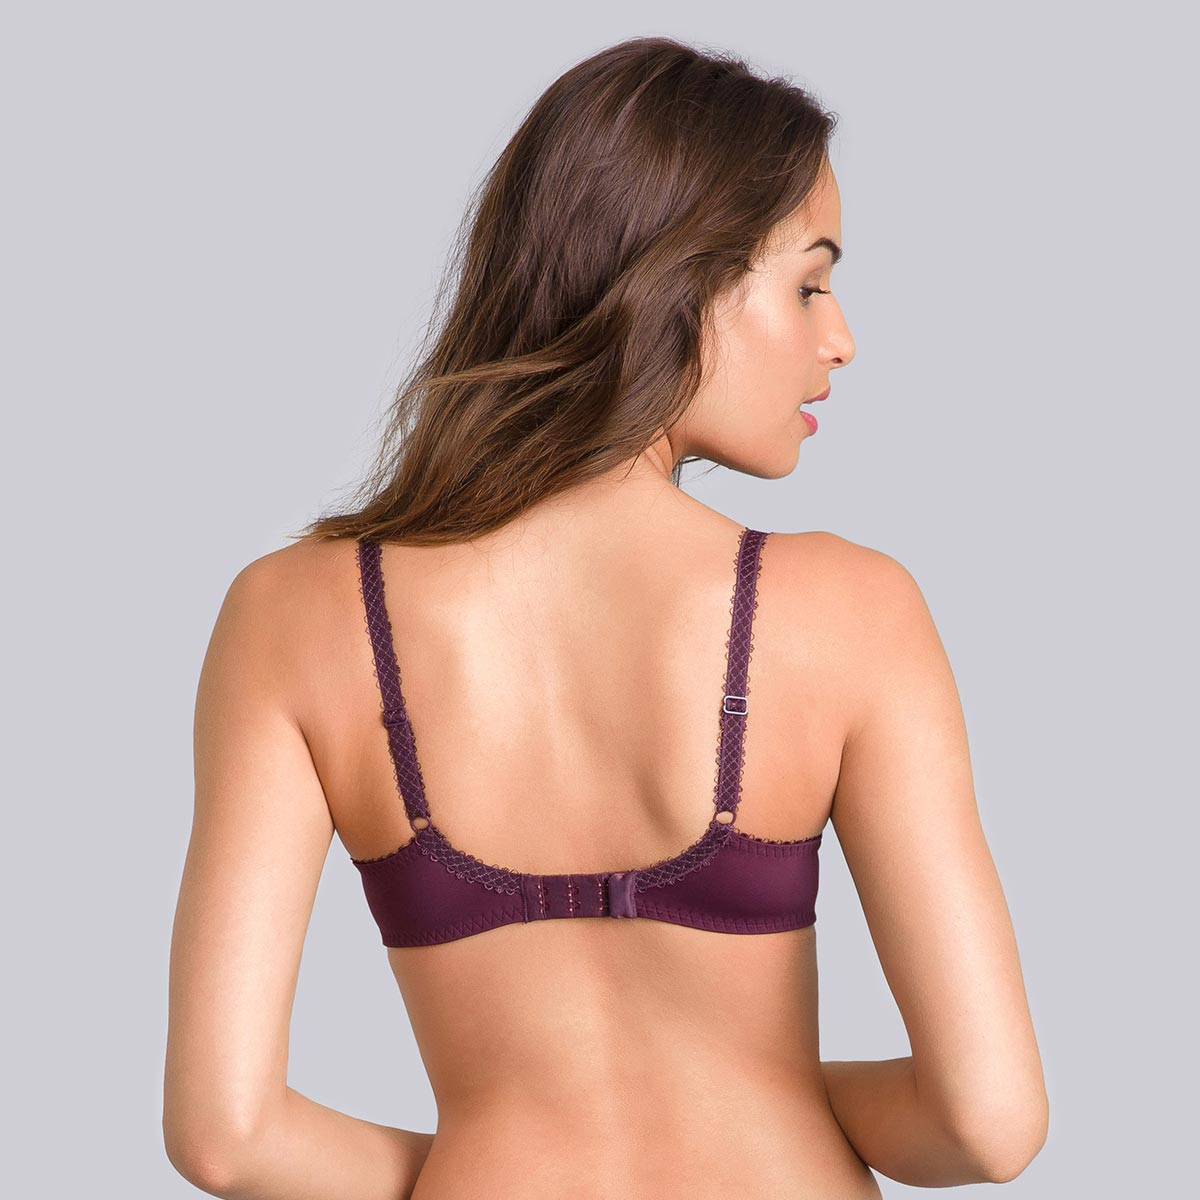 Black full-cup bra with plum print - Flower Elegance-PLAYTEX